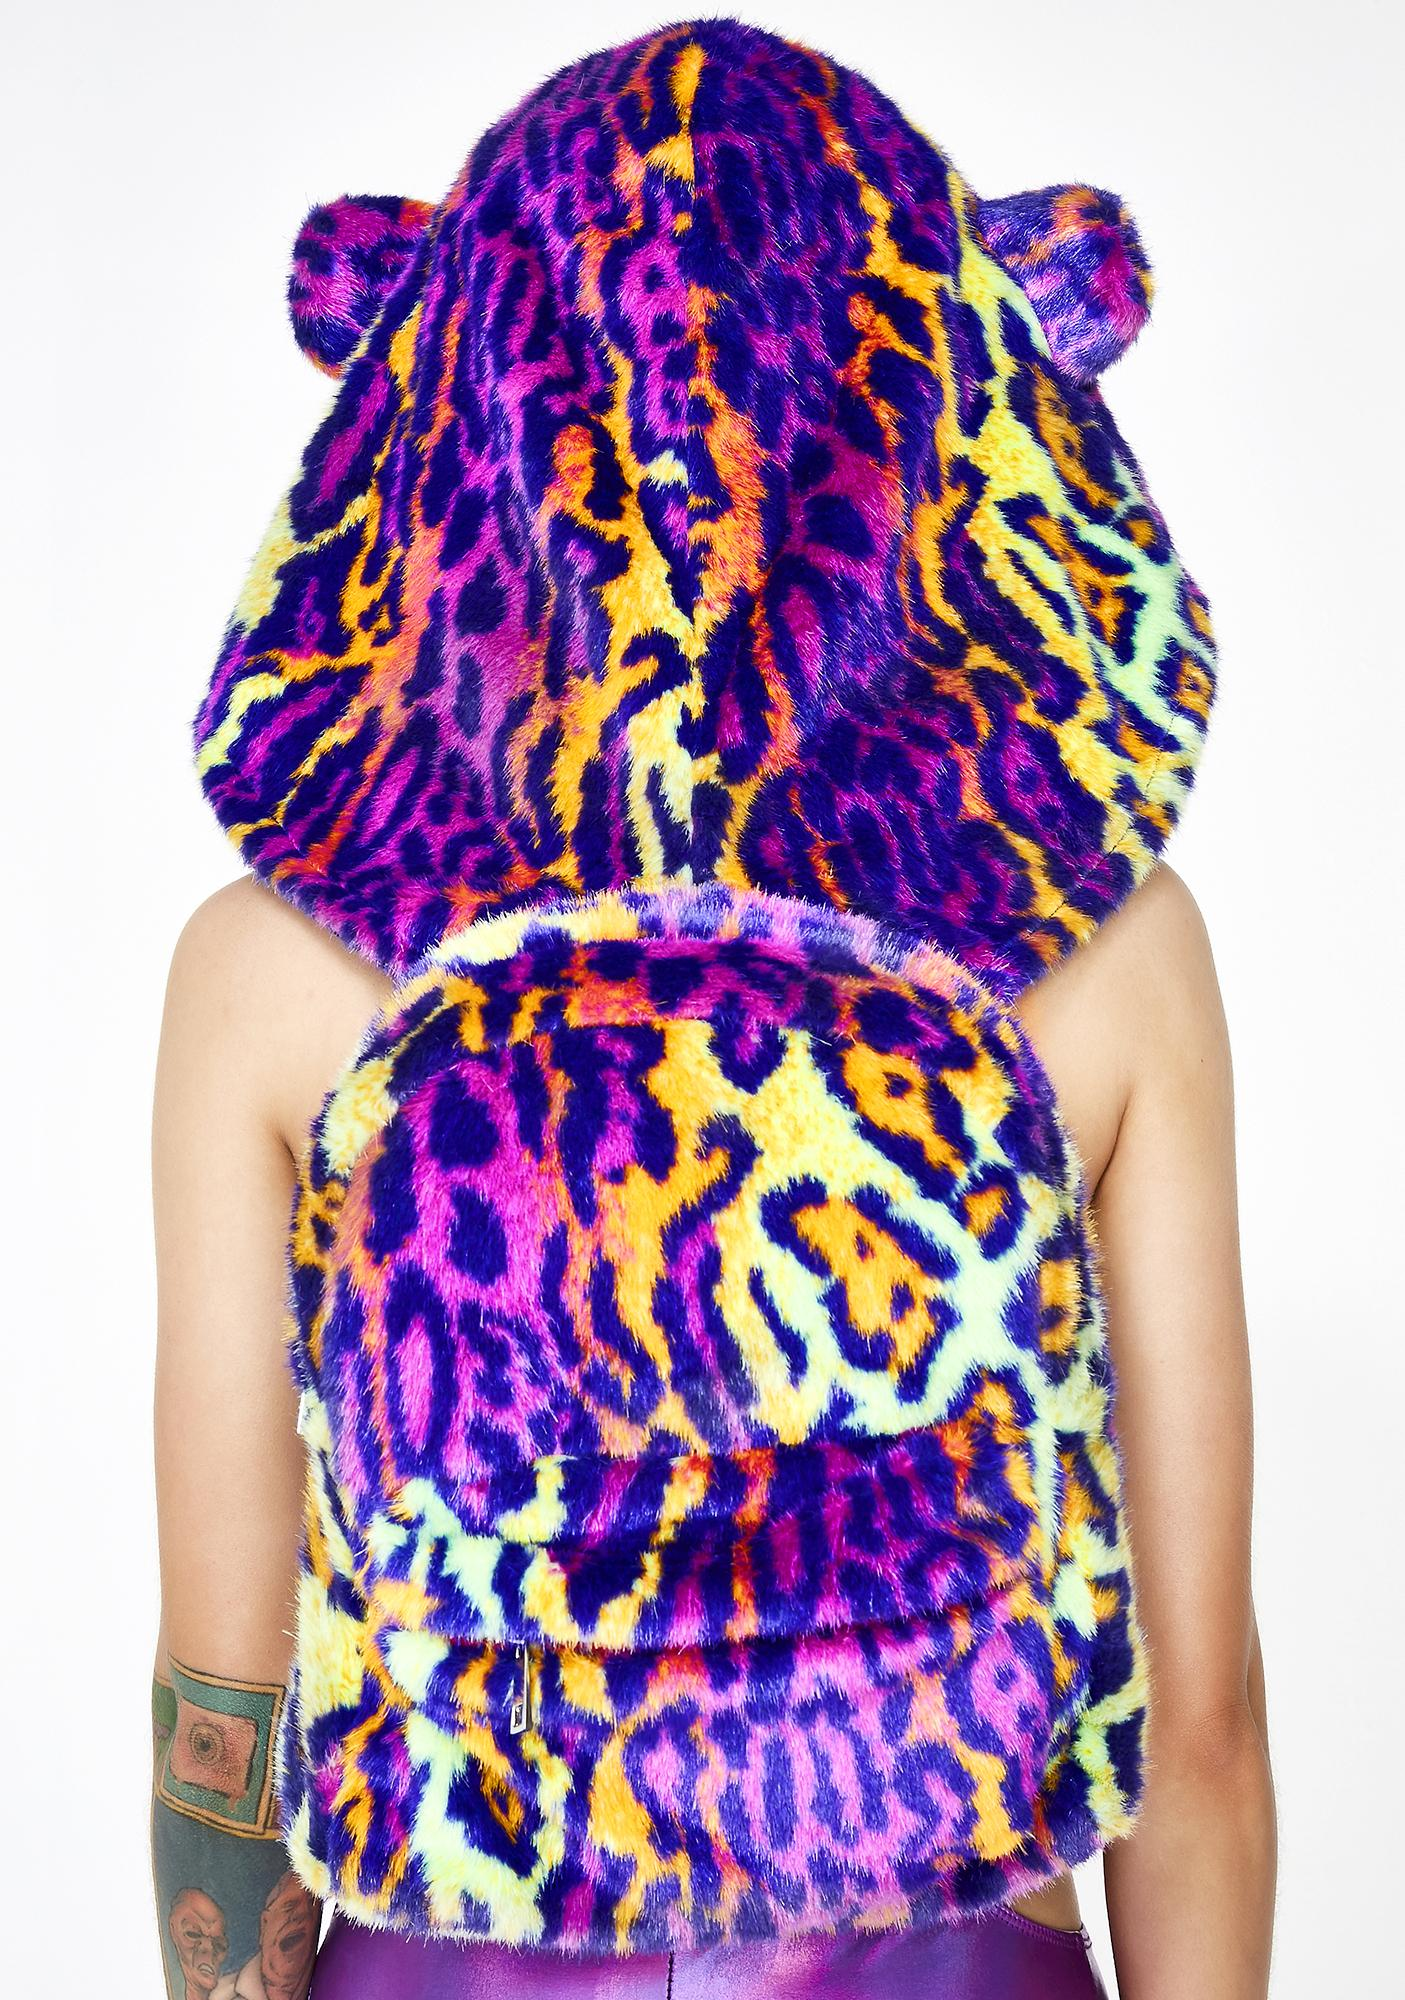 Club Exx Rave Kitty Hooded Backpack